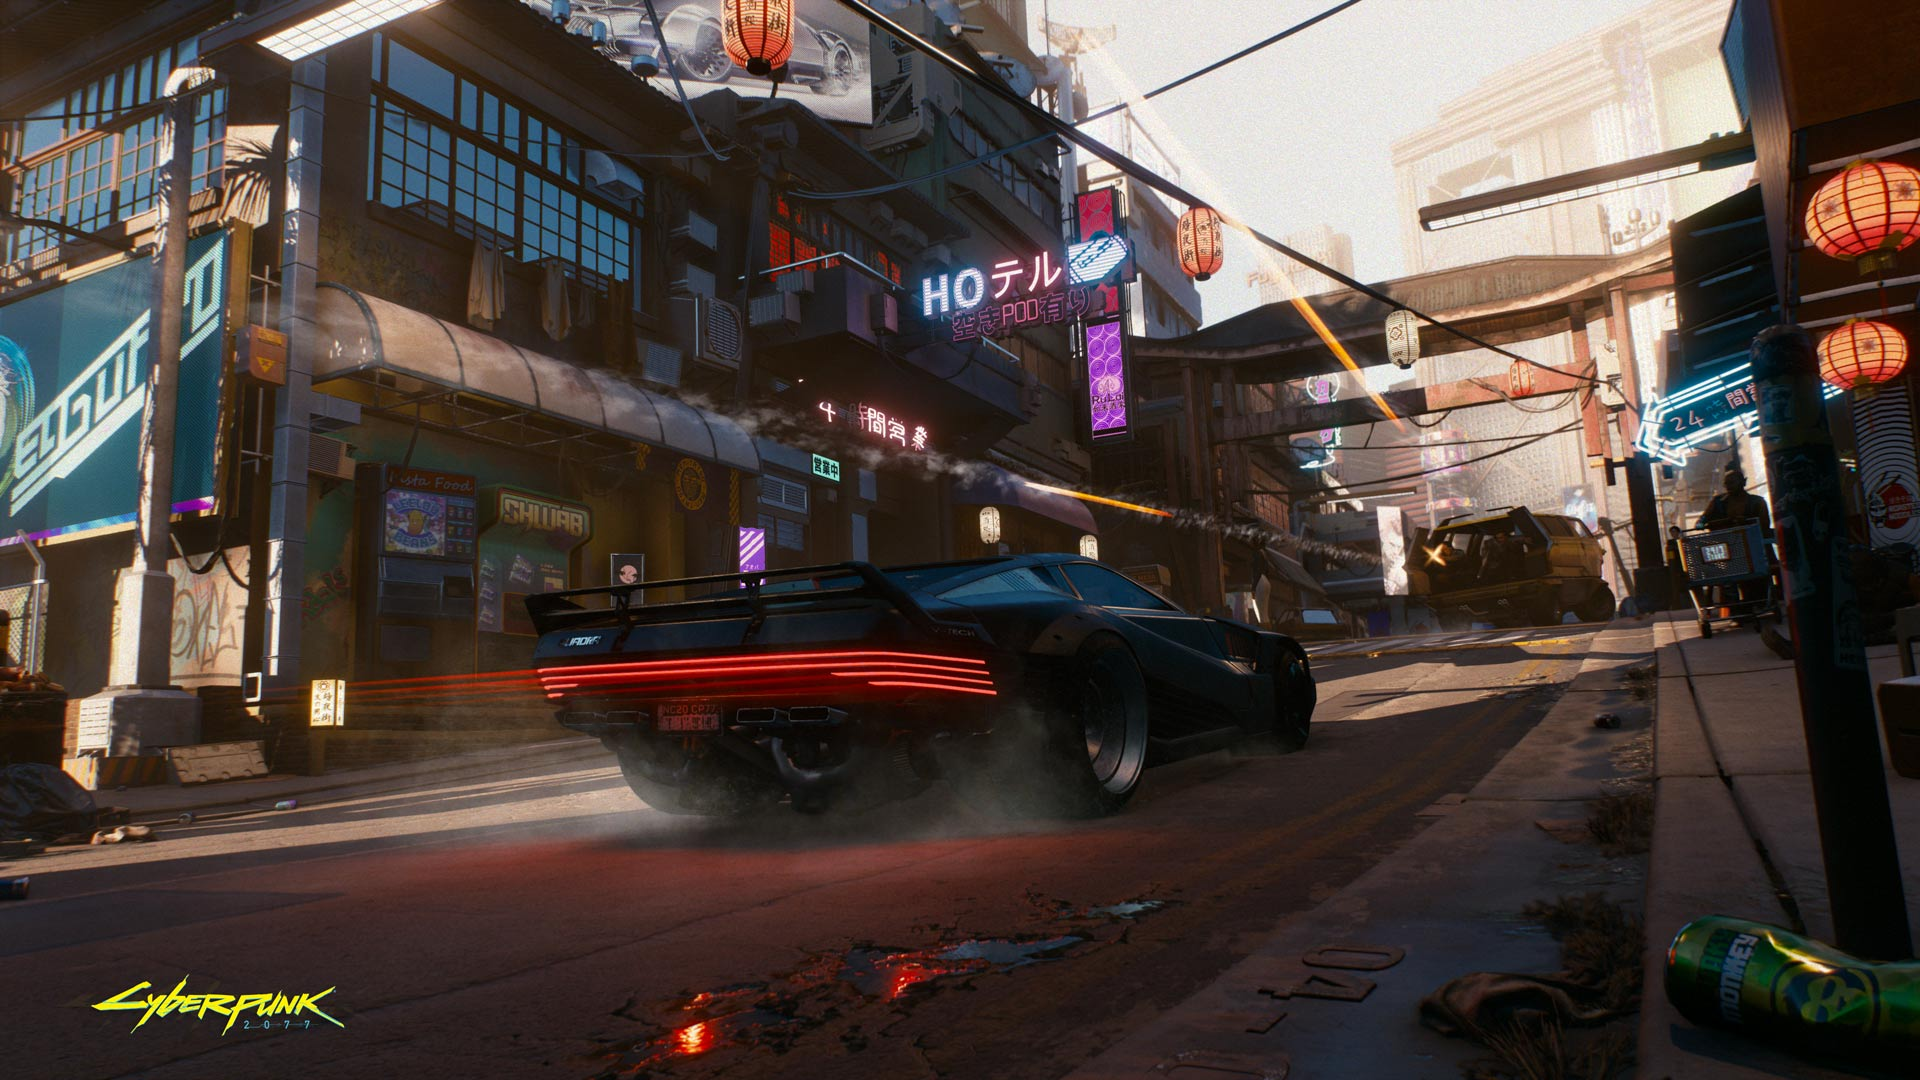 CD Projekt Red warns against uploading Cyberpunk 2077 gameplay videos early